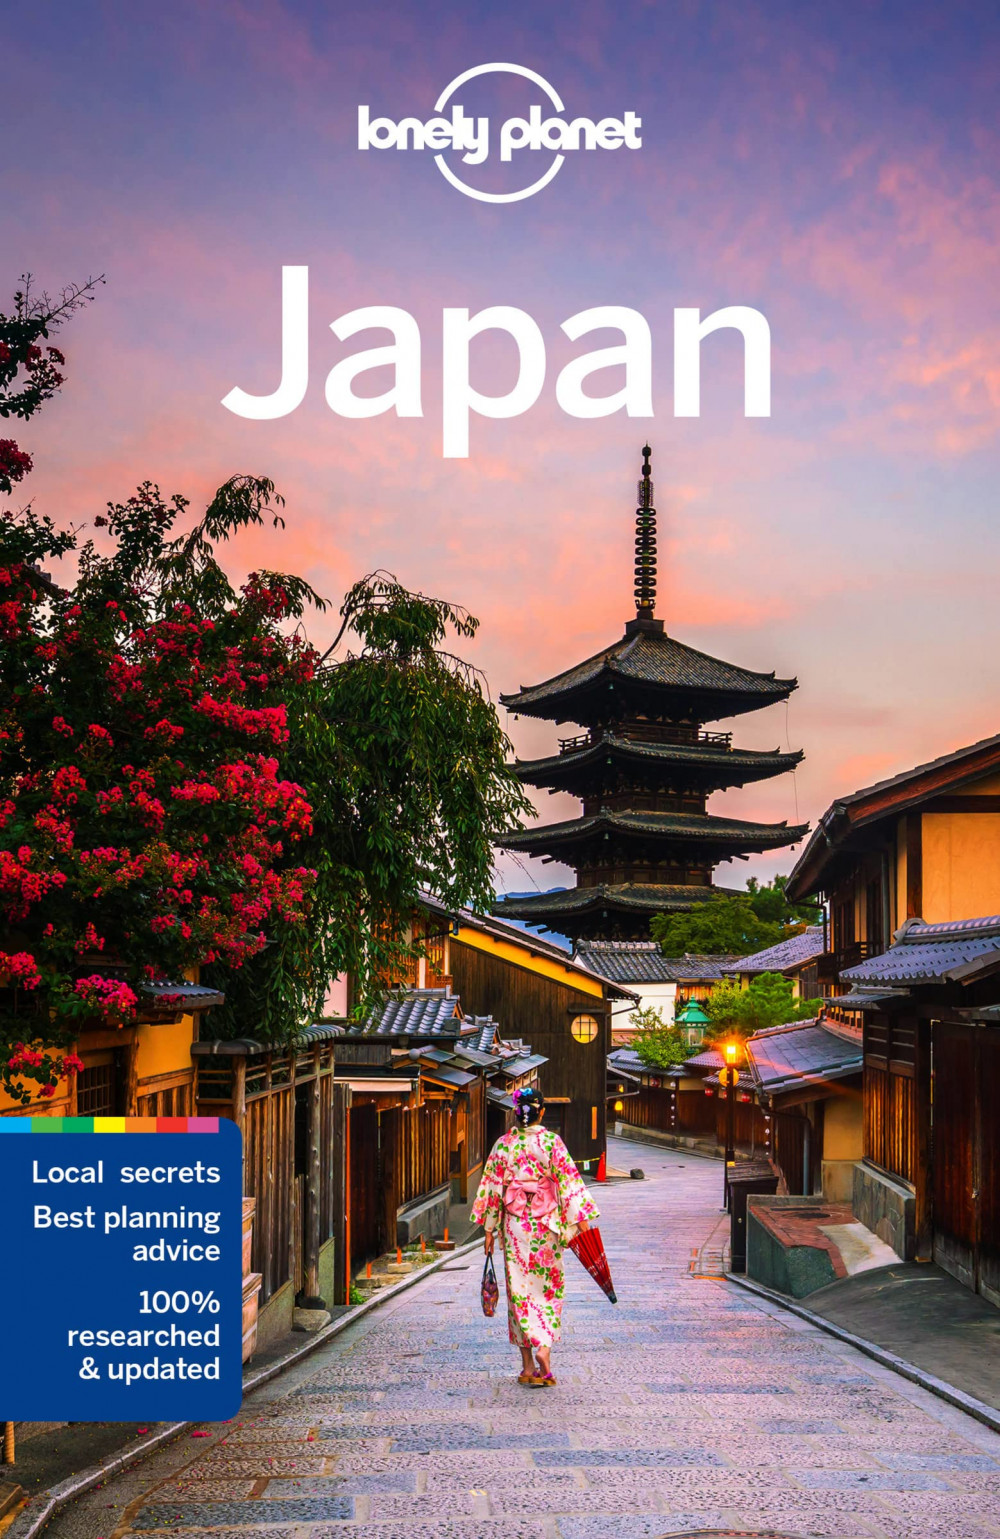 Japan - Lonely Planet